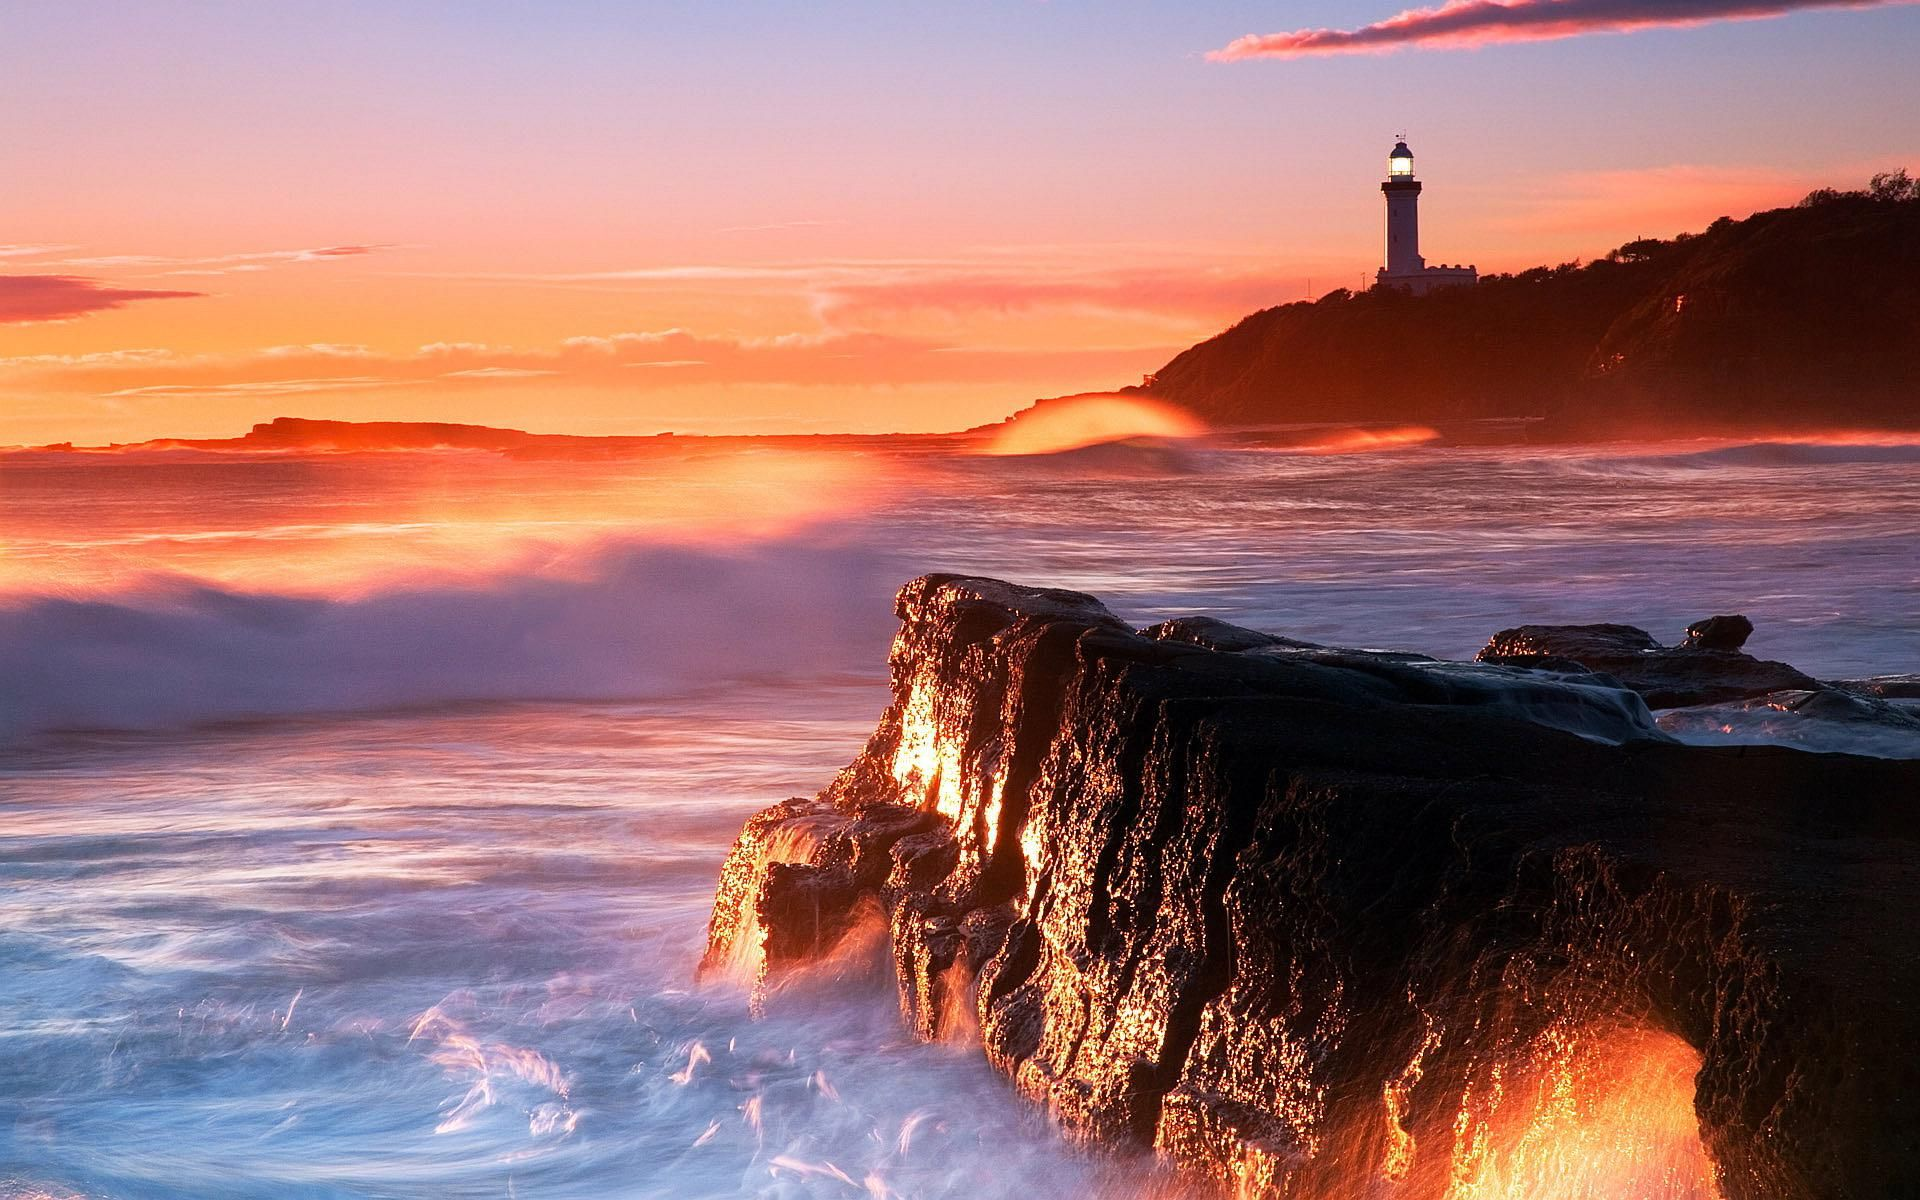 lighthouse sunset wallpaper get free top quality lighthouse sunset wallpaper for your desktop pc background